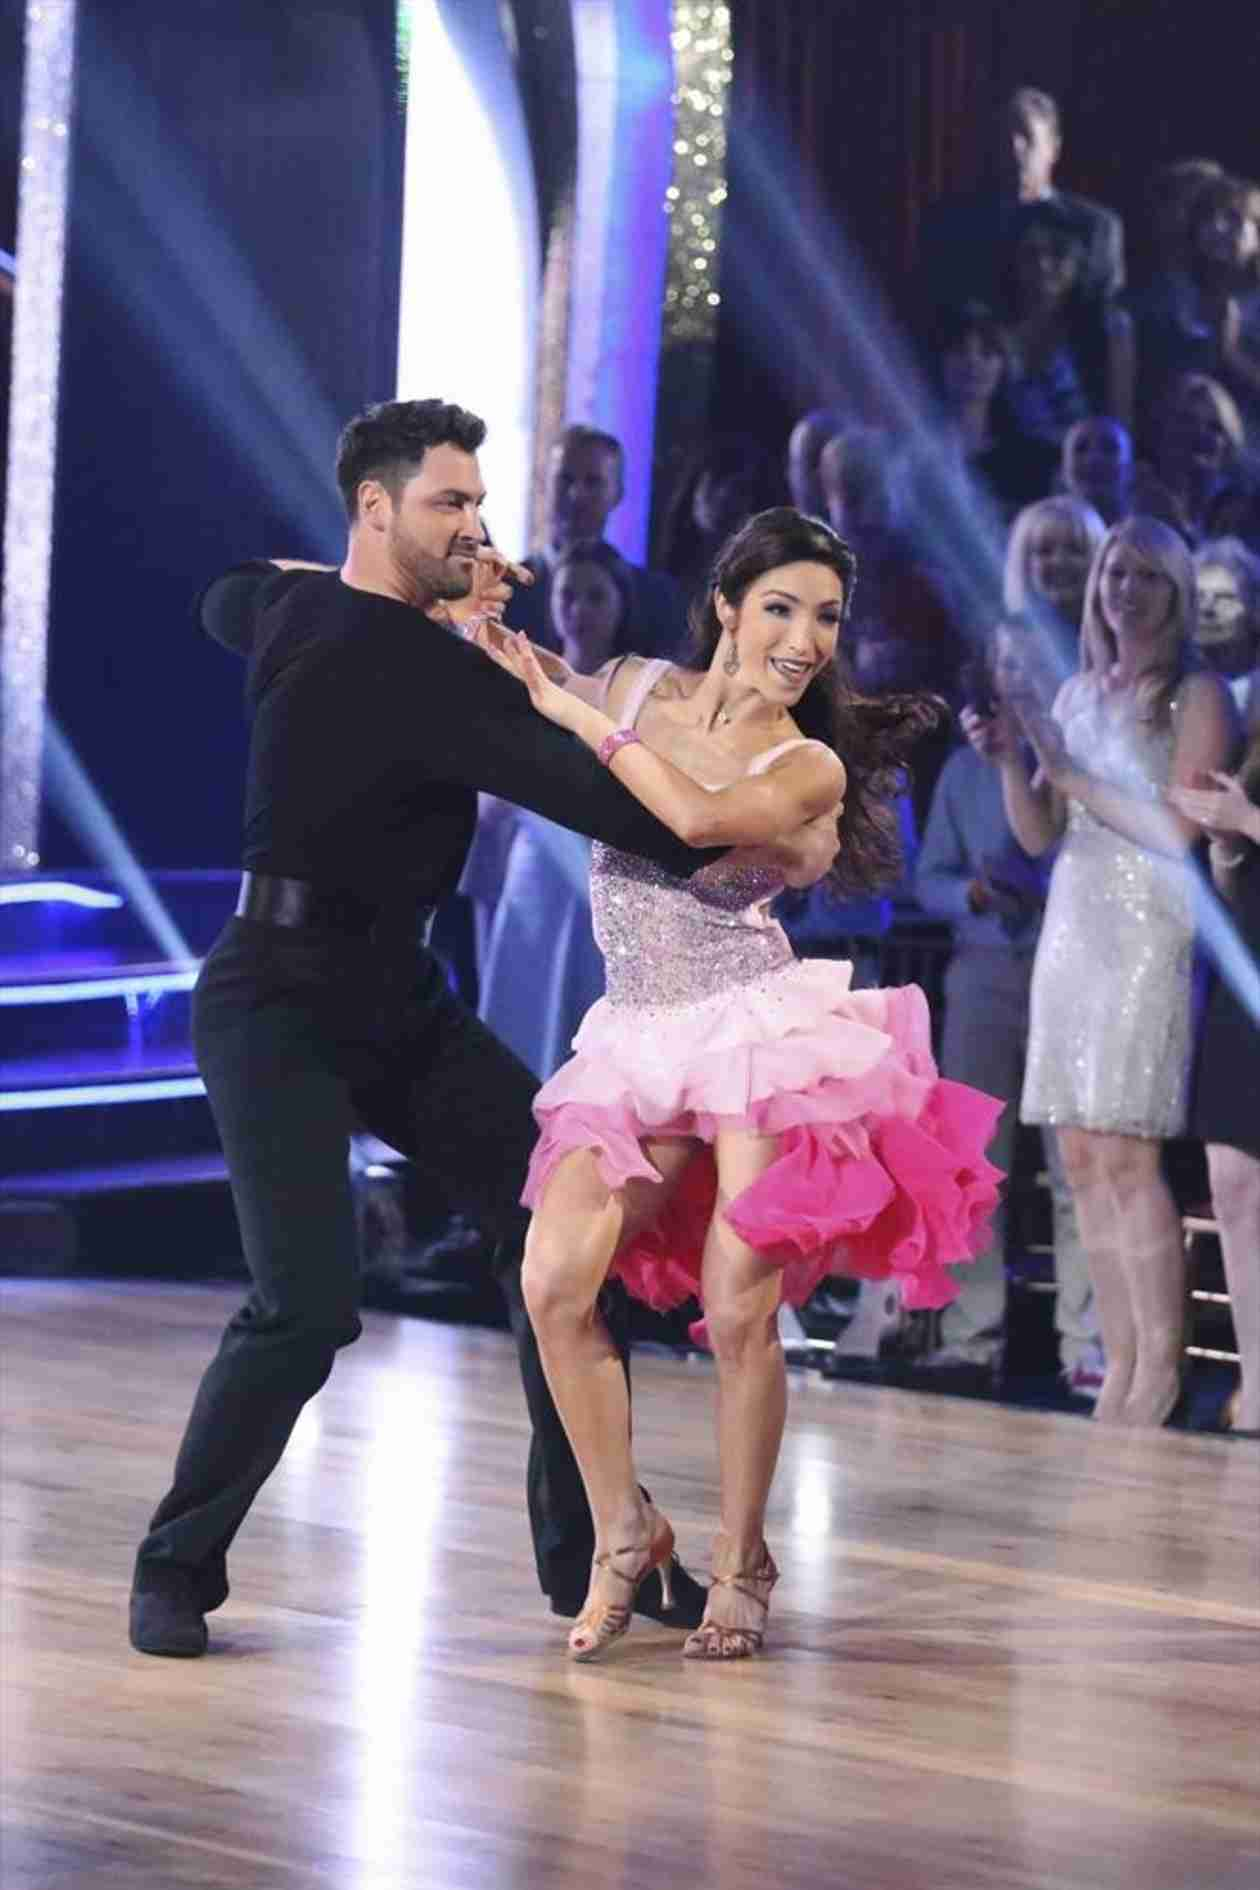 Dancing With the Stars 2014: Meryl Davis and Maksim Chmerkovskiy's Week 2 Swing (VIDEO)